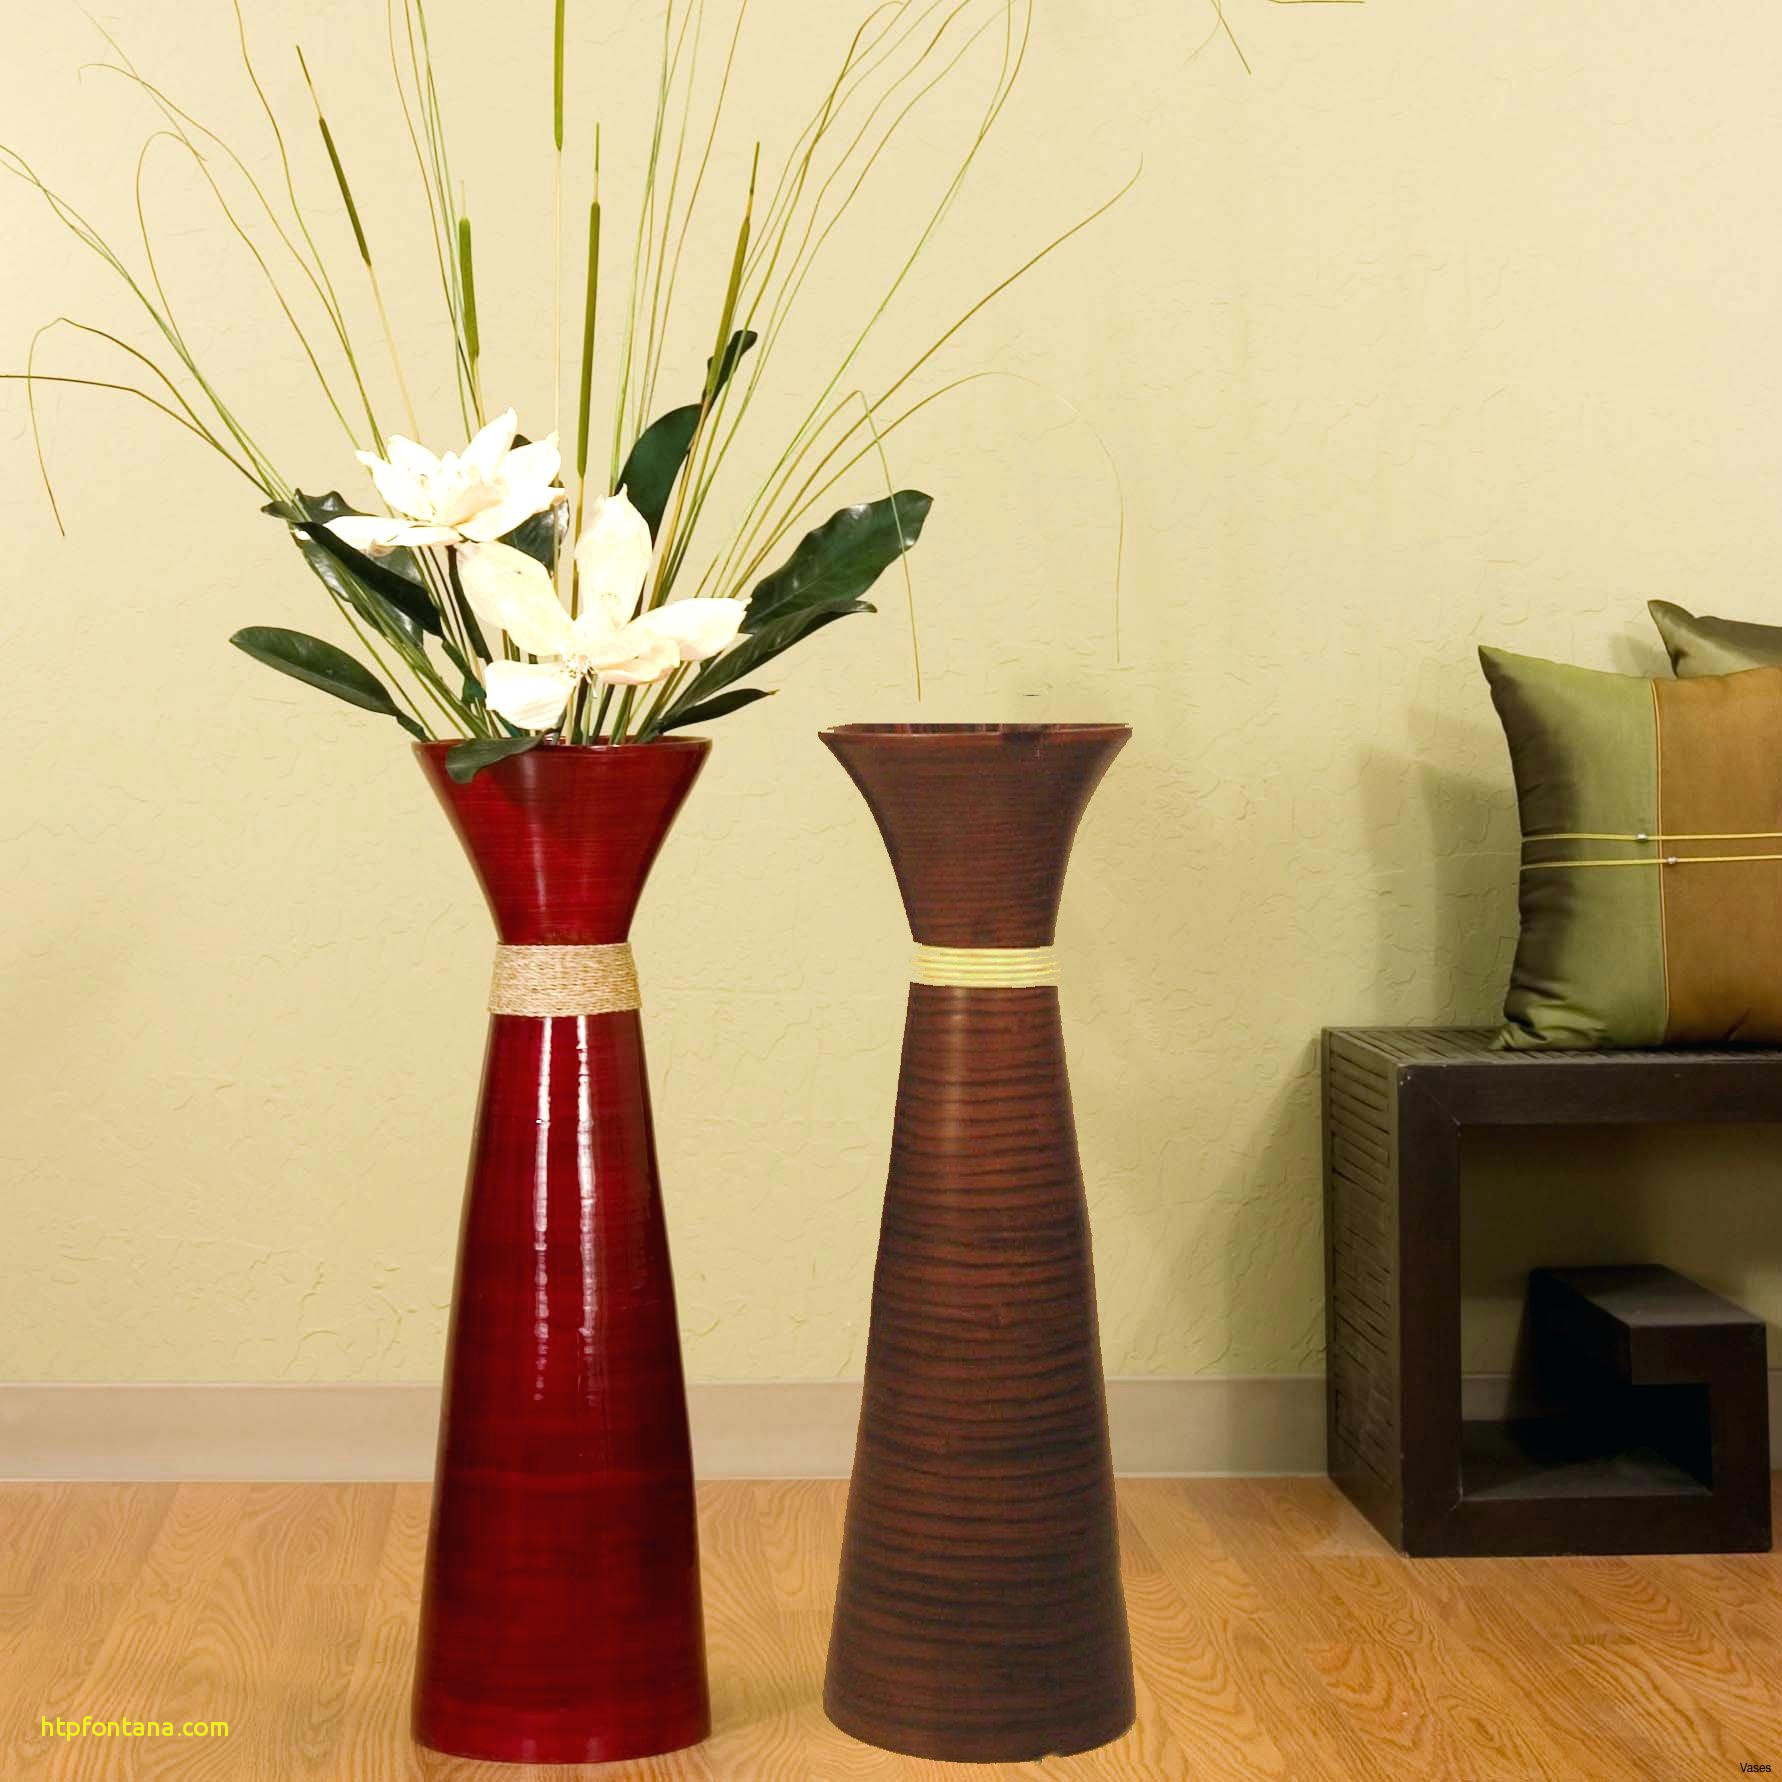 tall thin vases for wedding of living room vase inspirational living room floor vase best h vases with regard to living room vase lovely living room decor vases best decorative colorful red sticks in a of